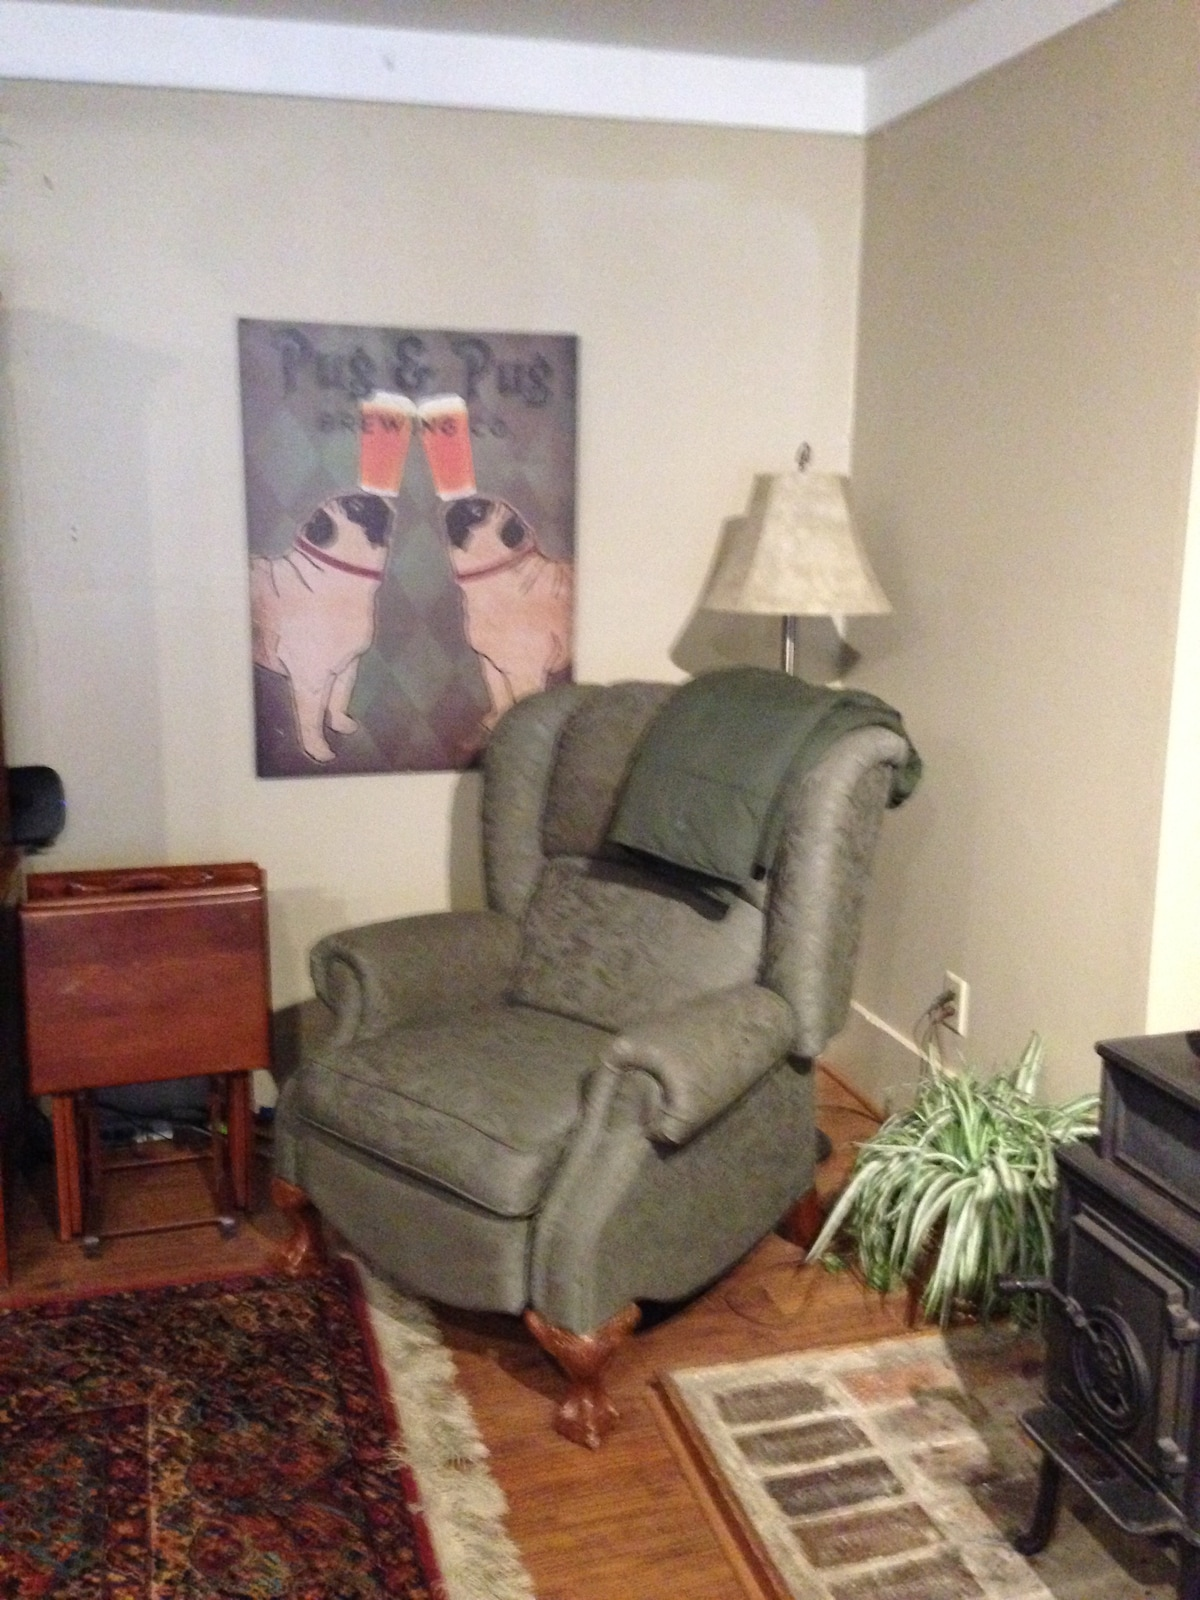 One of two Lazy-Boy recliners in livening room